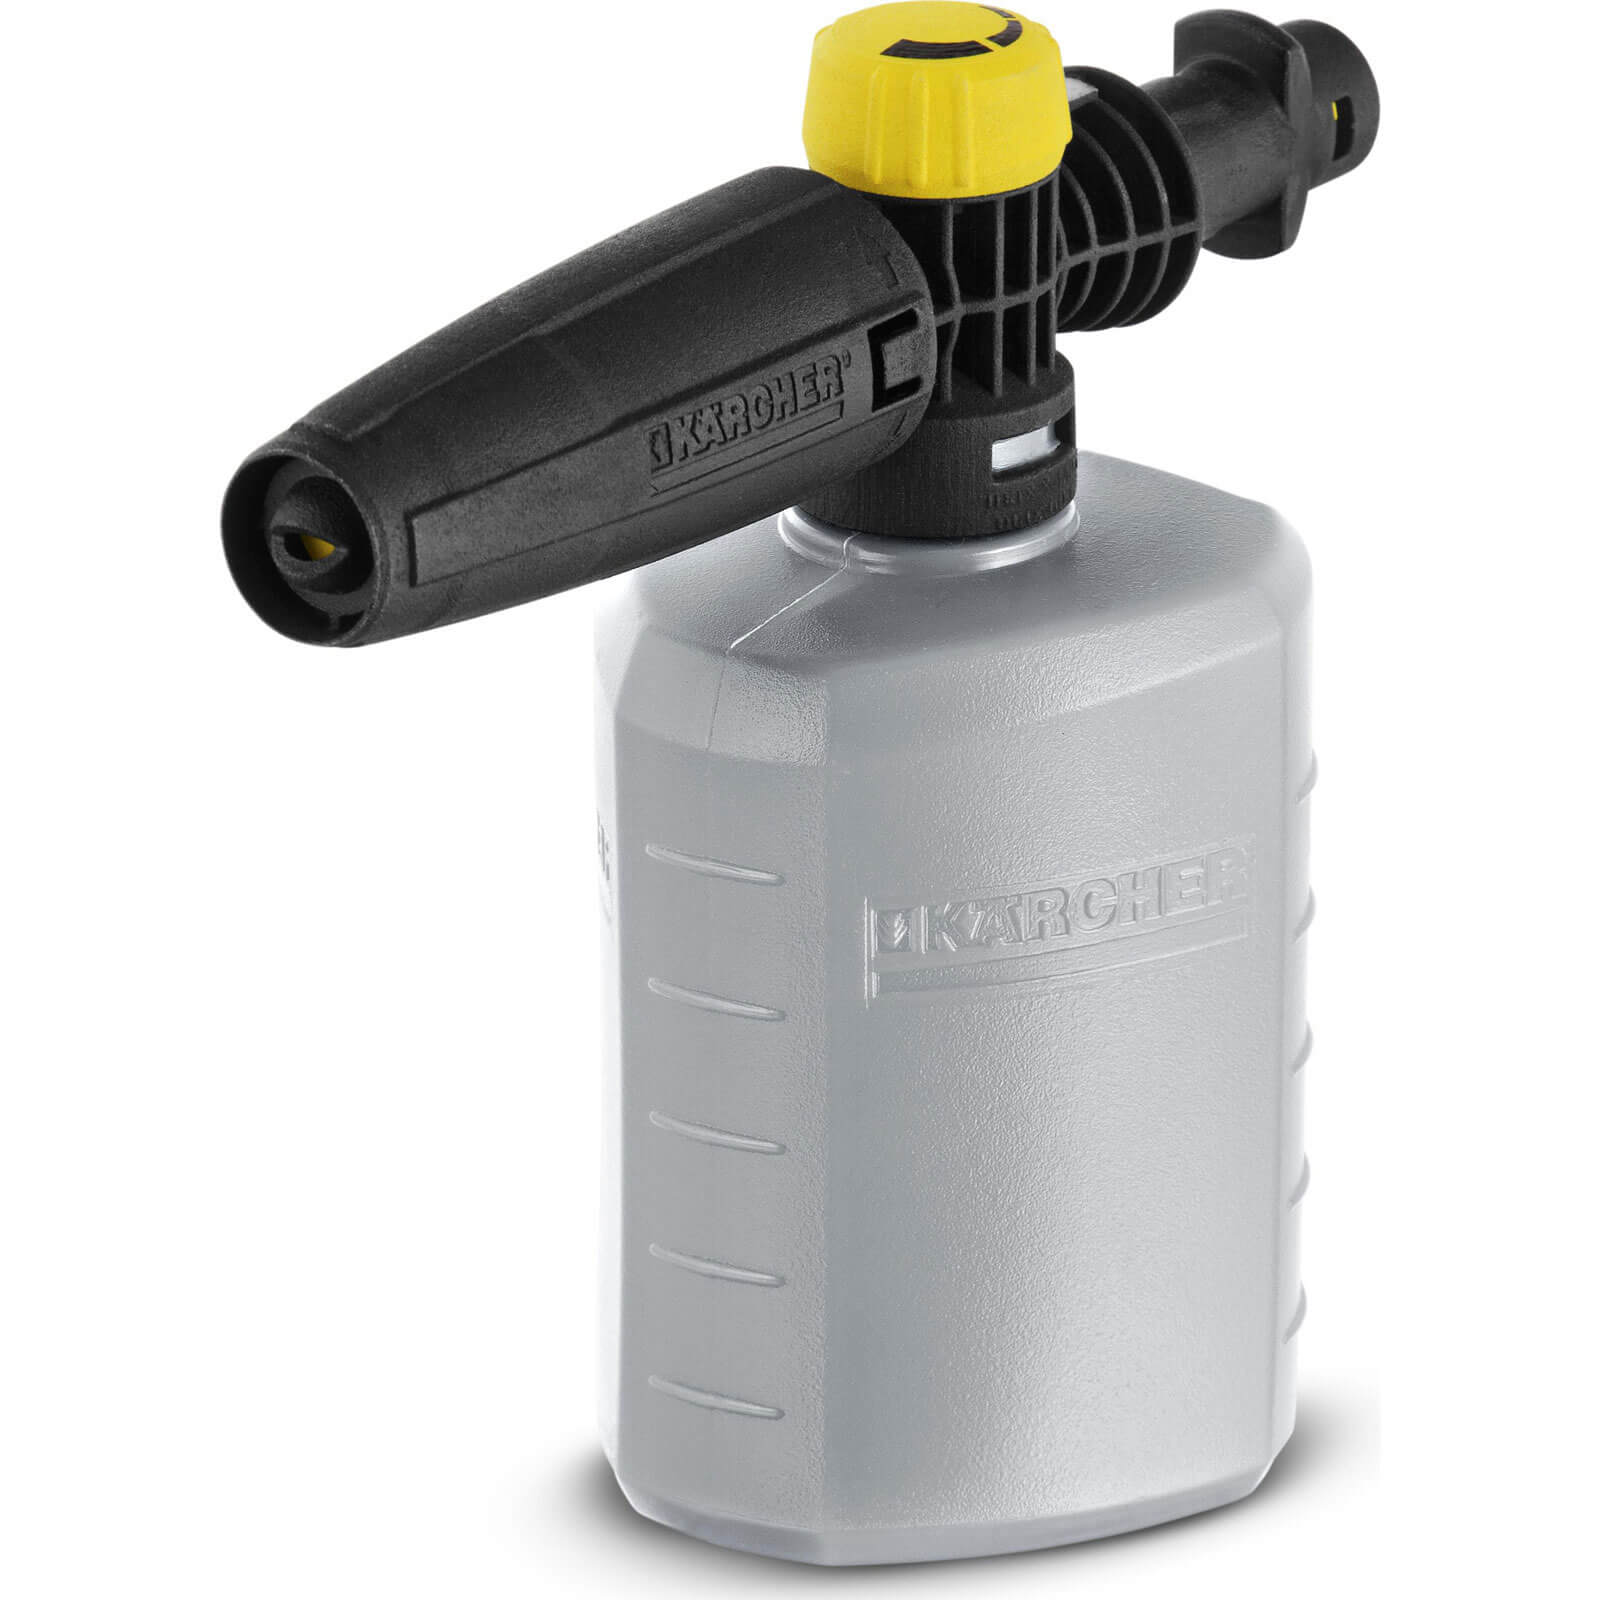 Karcher Foam Nozzle Bottle for K Series Pressure Washers 600ml